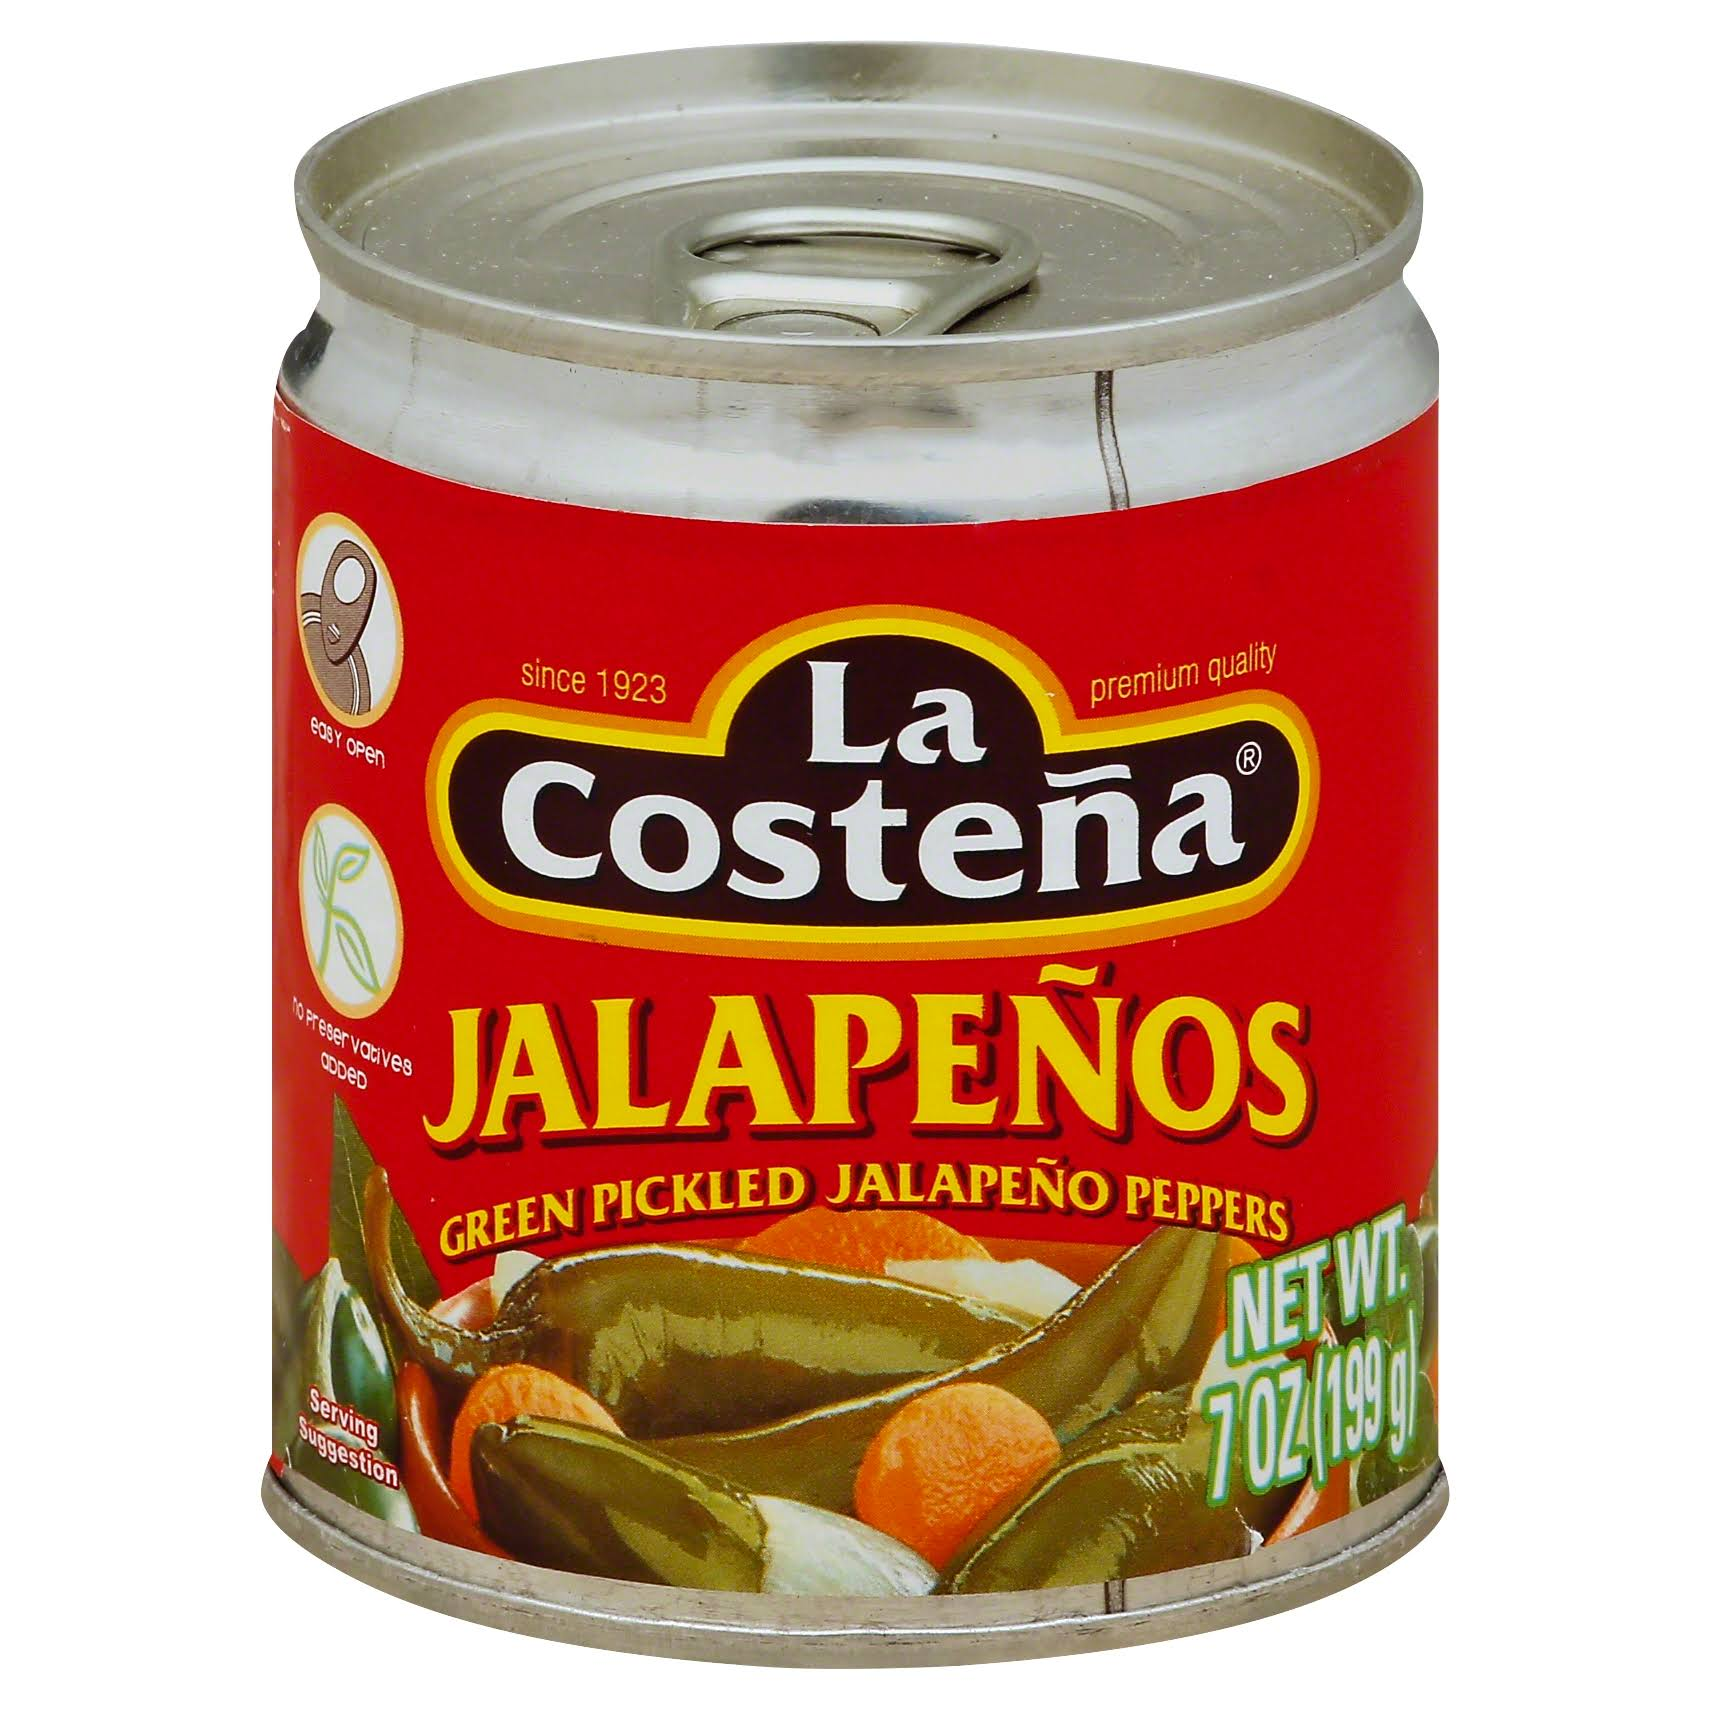 La Costena Green Pickled Whole Jalapeno Peppers - 7oz